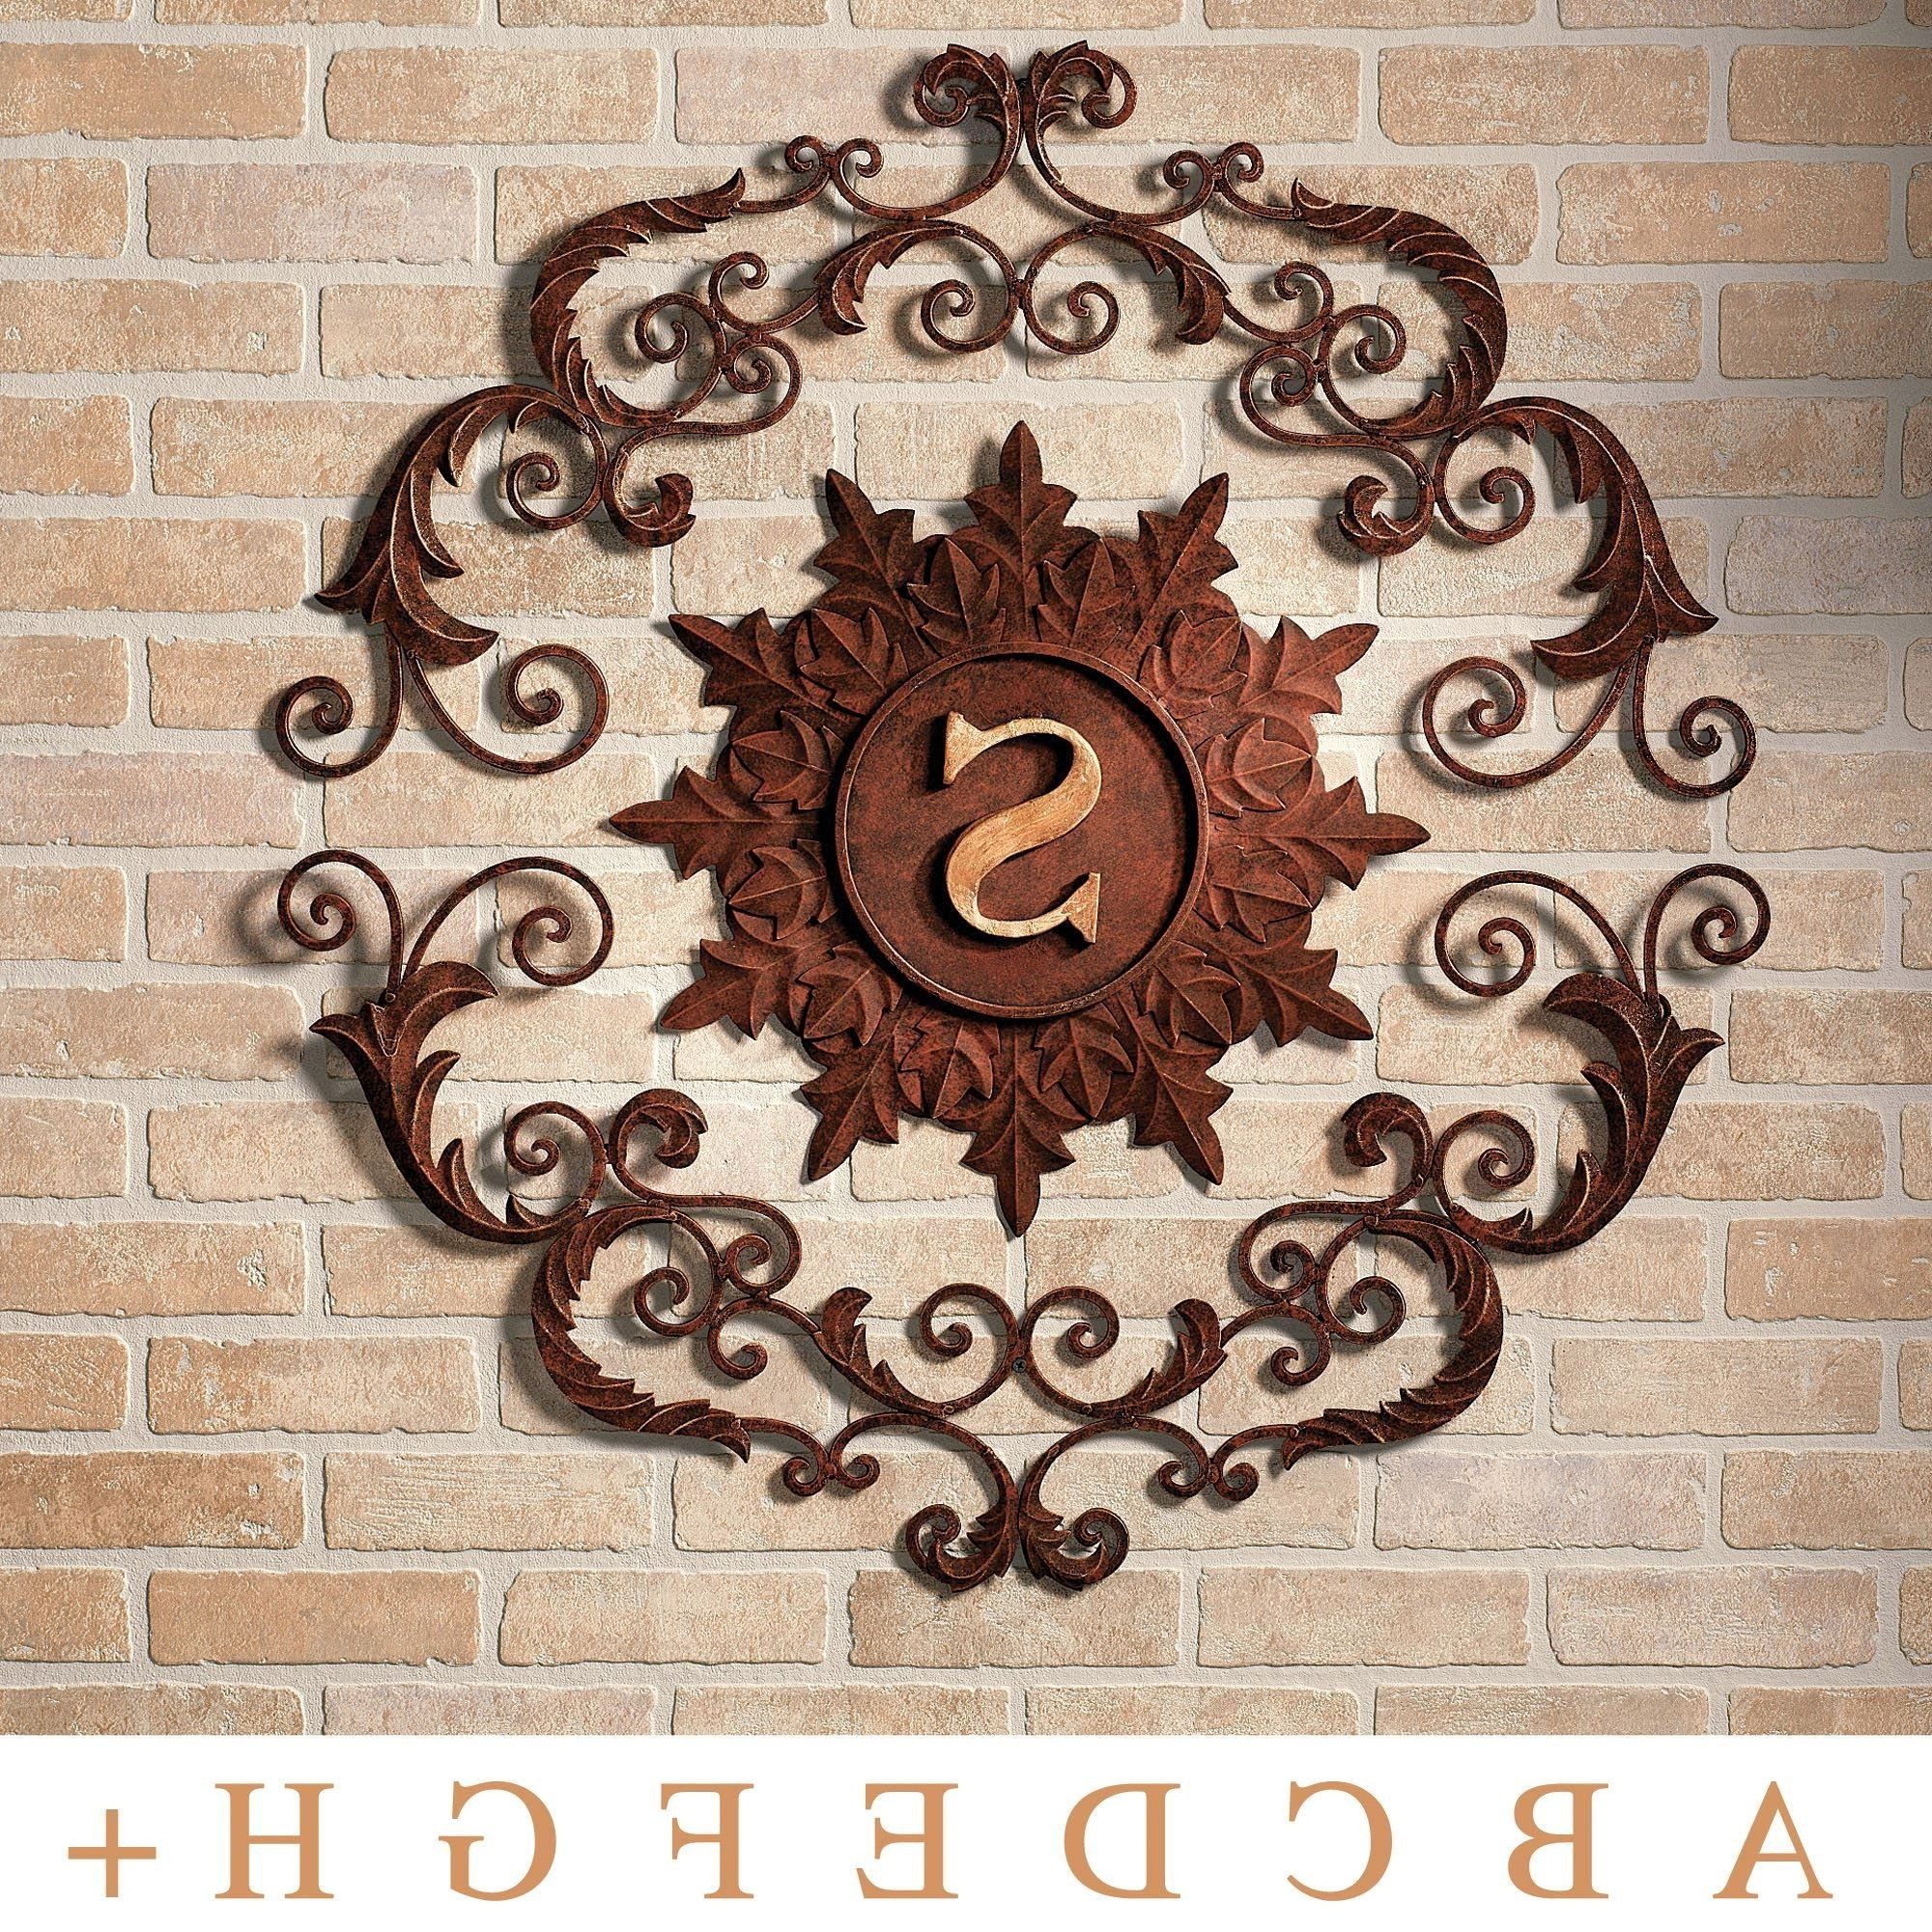 Newest 31 New Outdoor Sun Wall Art Inspiration Of Metal Outdoor Wall Art Within Outdoor Sun Wall Art (View 5 of 15)